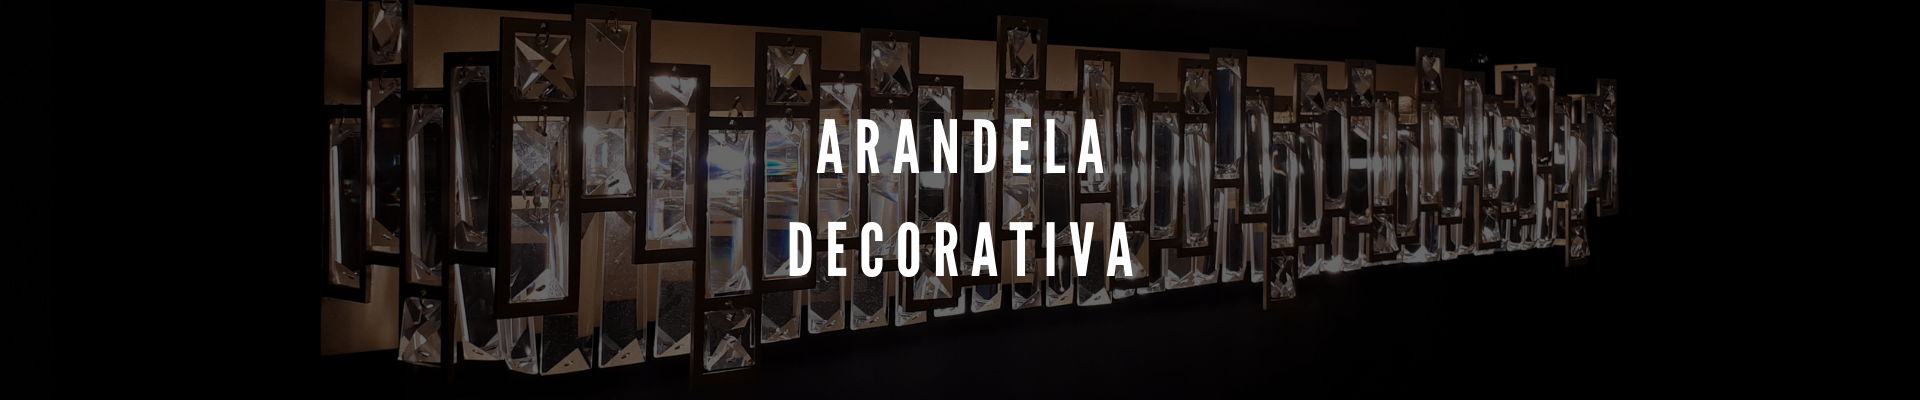 Arandelas Decorativas